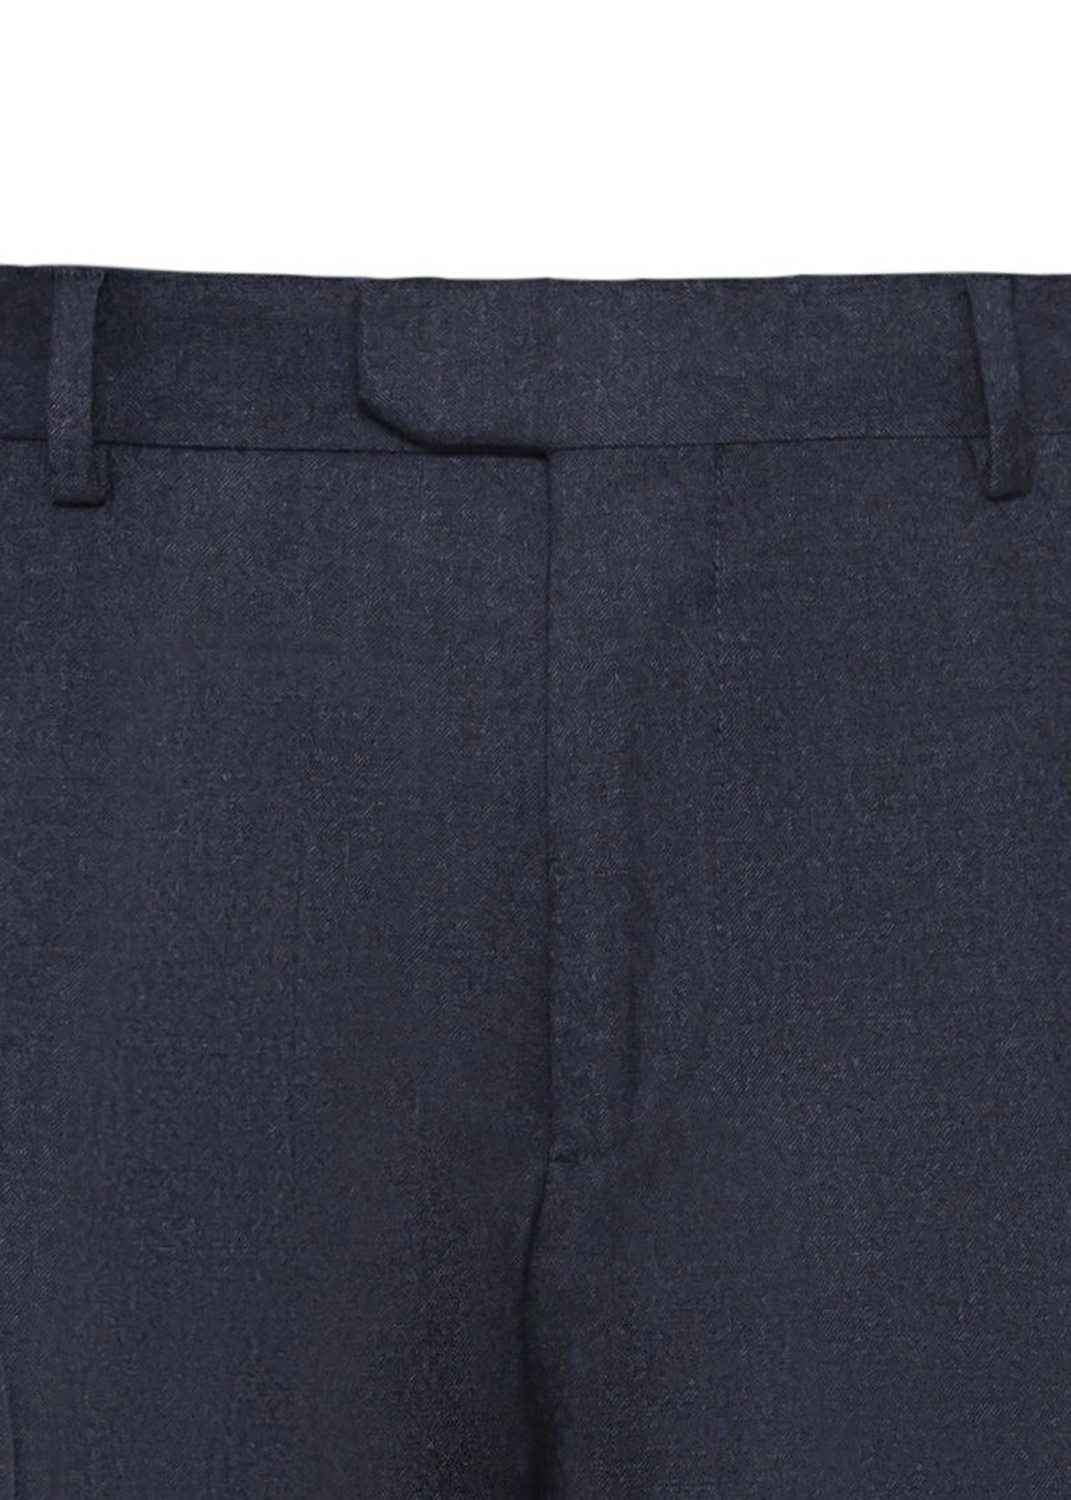 8ZF021   TROUSERS NO image number 2